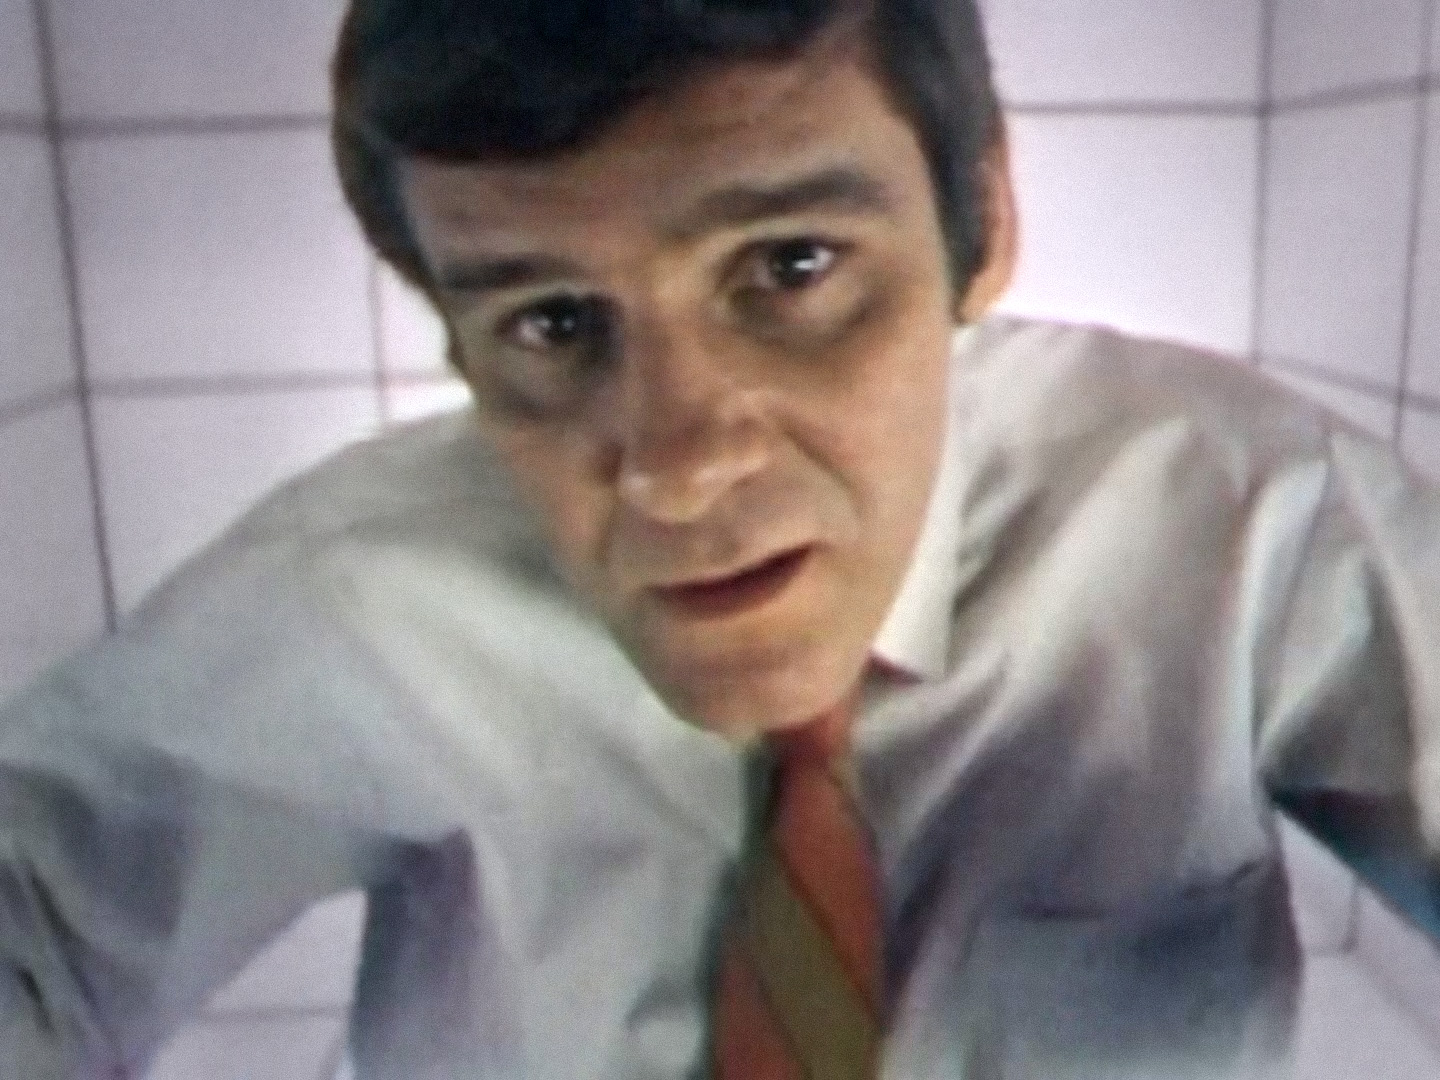 File:The Man in The Cube.jpg